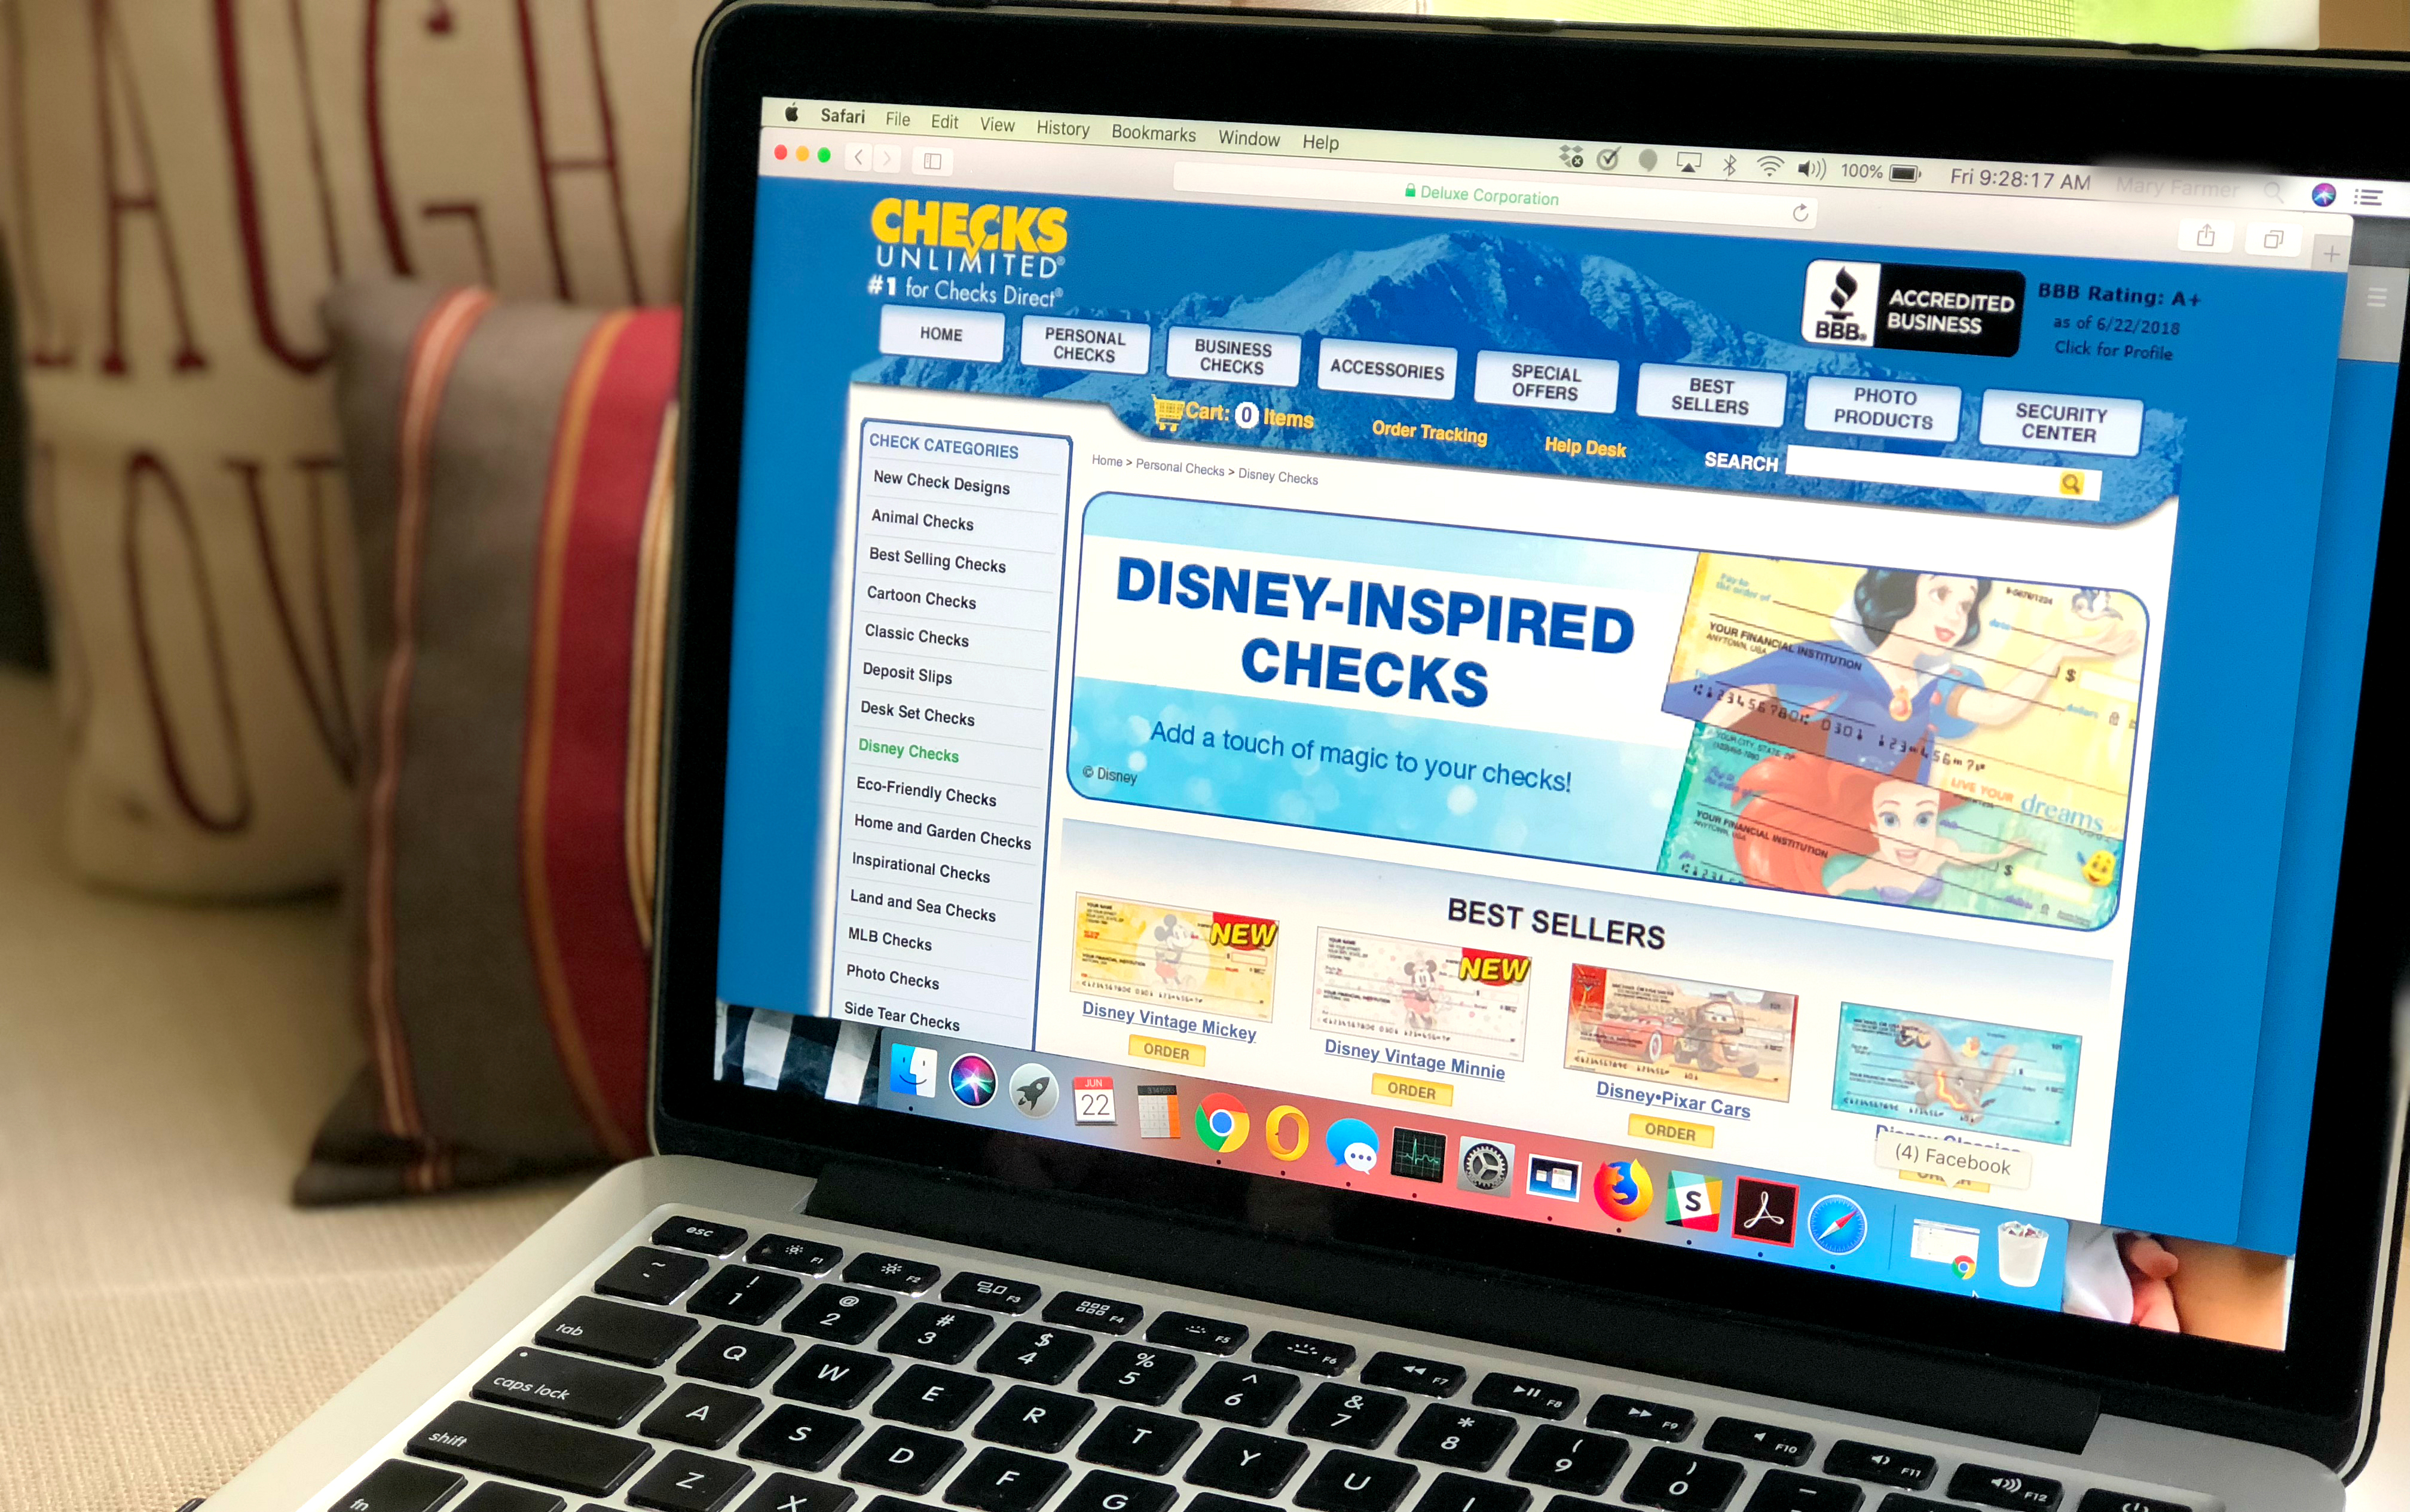 Get custom Disney personalized checks from Checks Unlimited shipped for less than $5 per box with this deal!